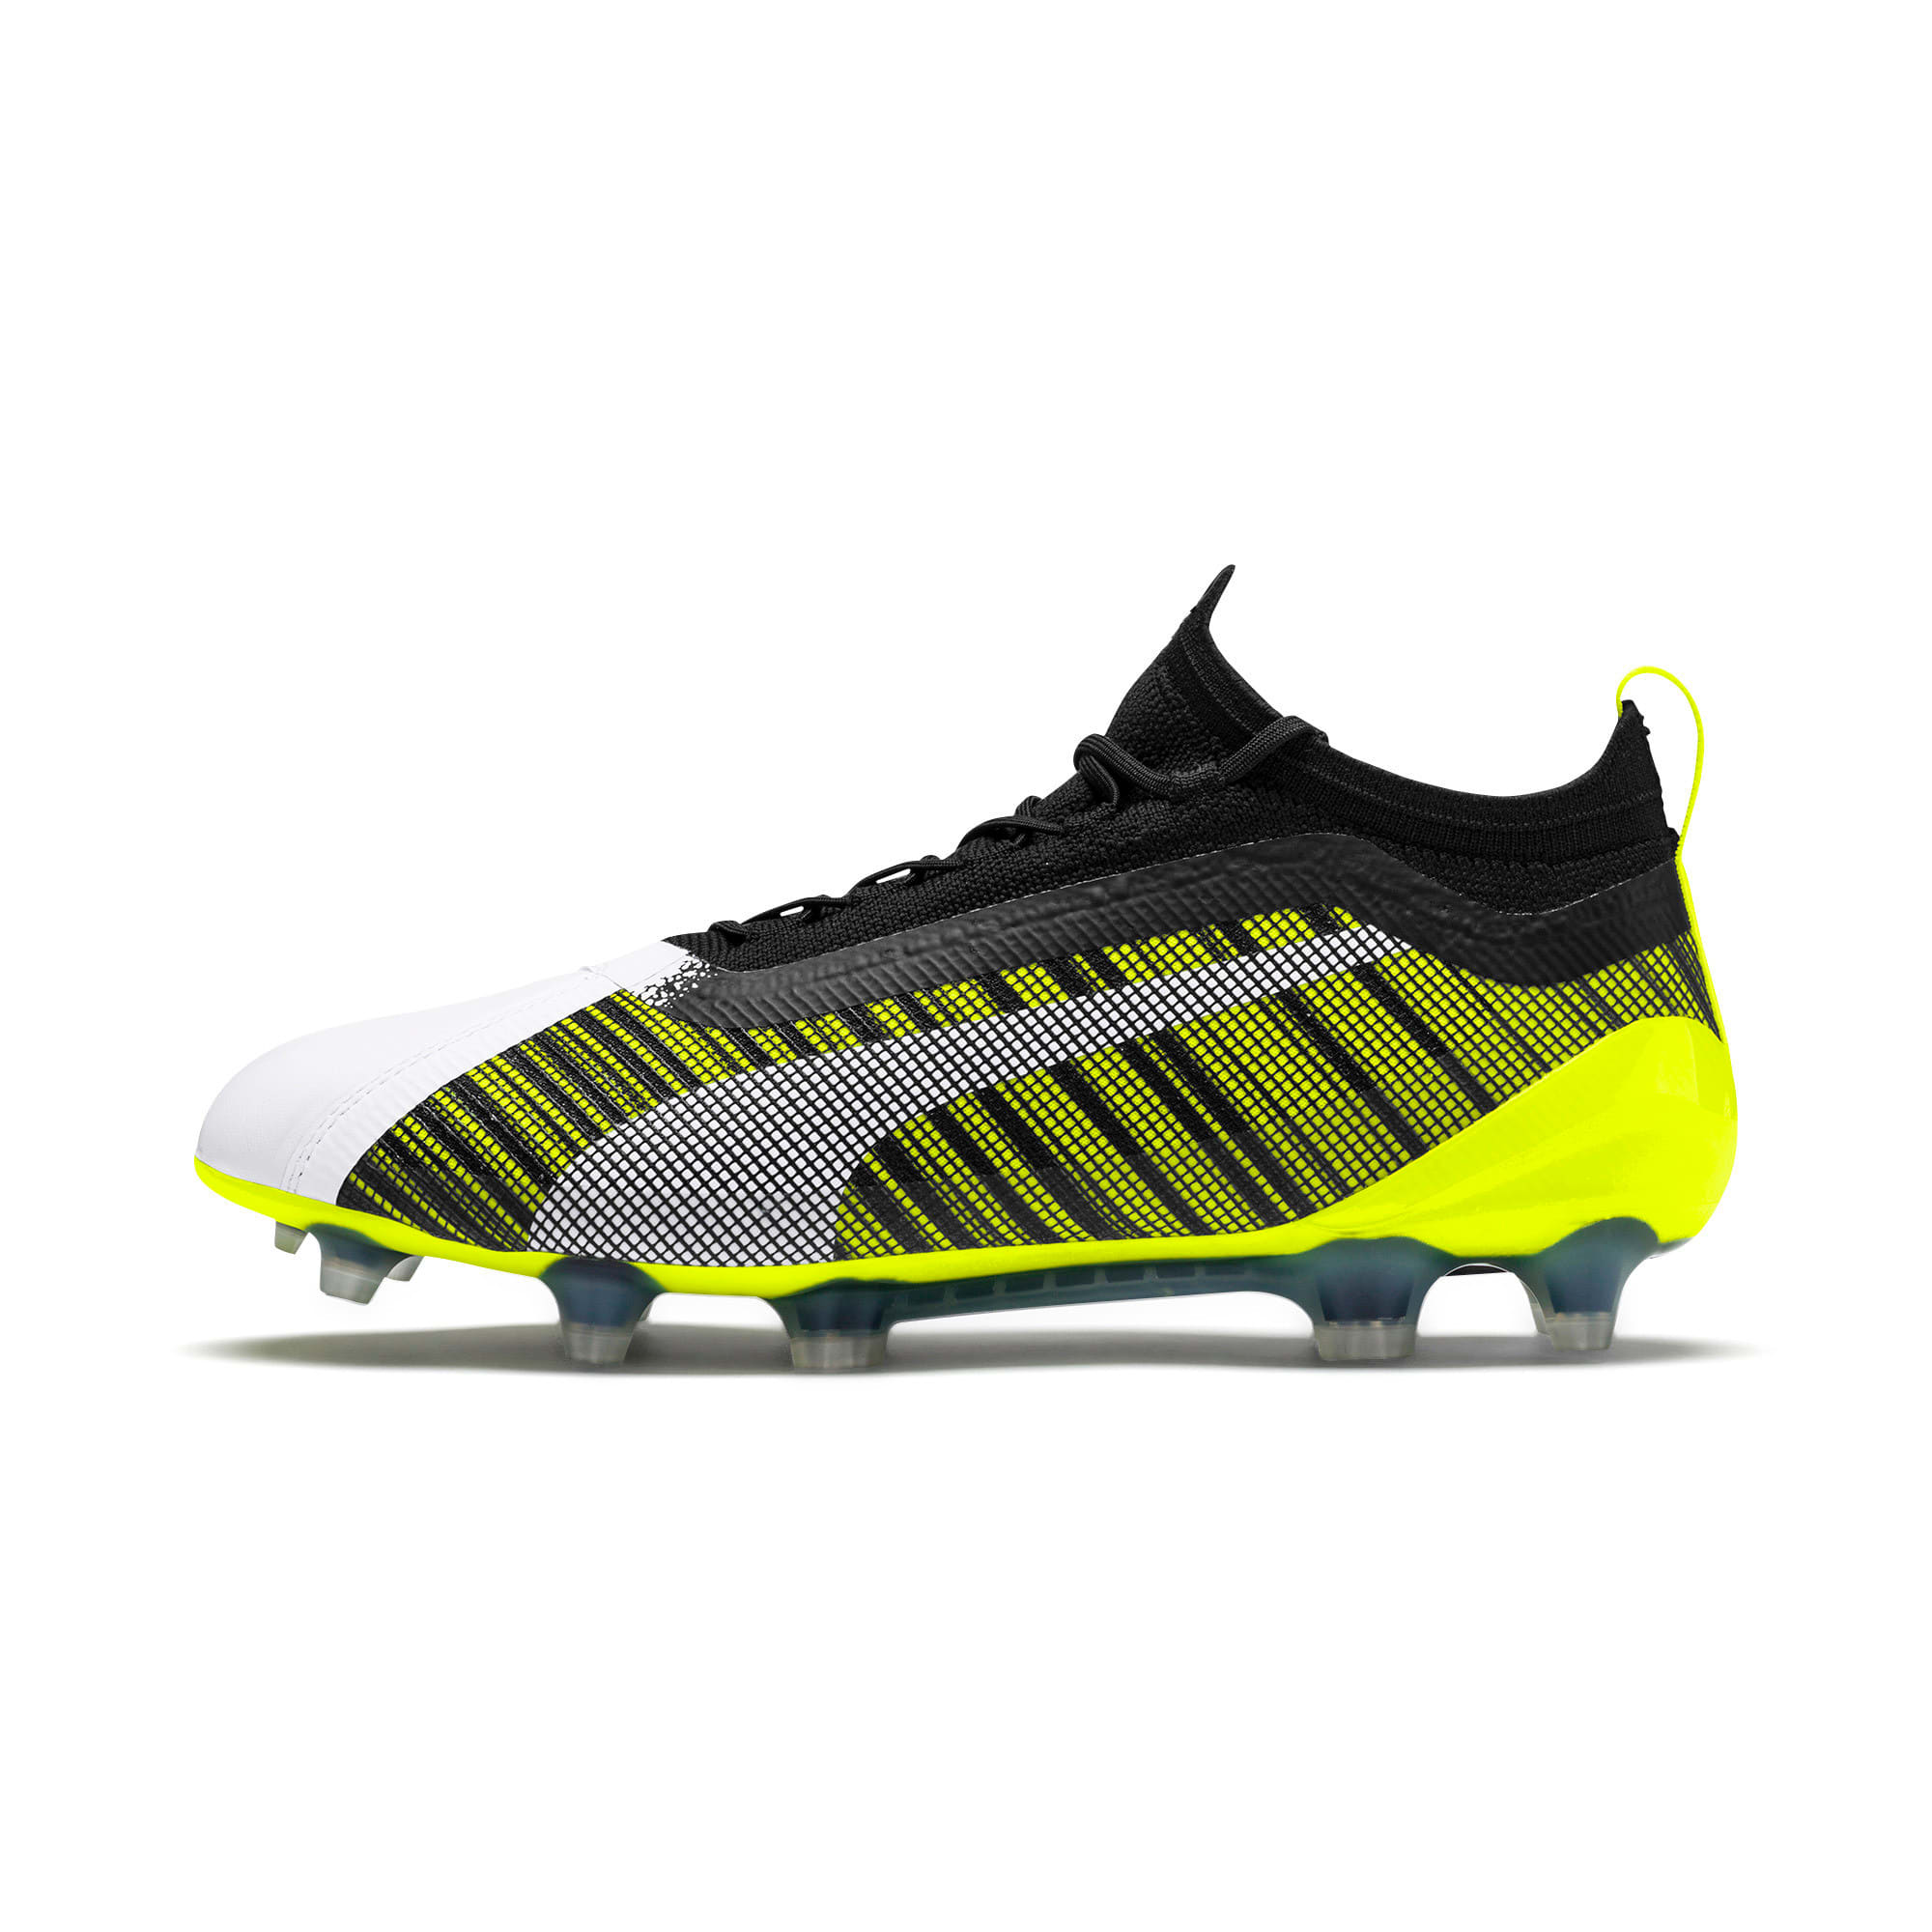 Thumbnail 1 of PUMA ONE 5.1 evoKNIT FG/AG Men's Football Boots, White-Black-Yellow Alert, medium